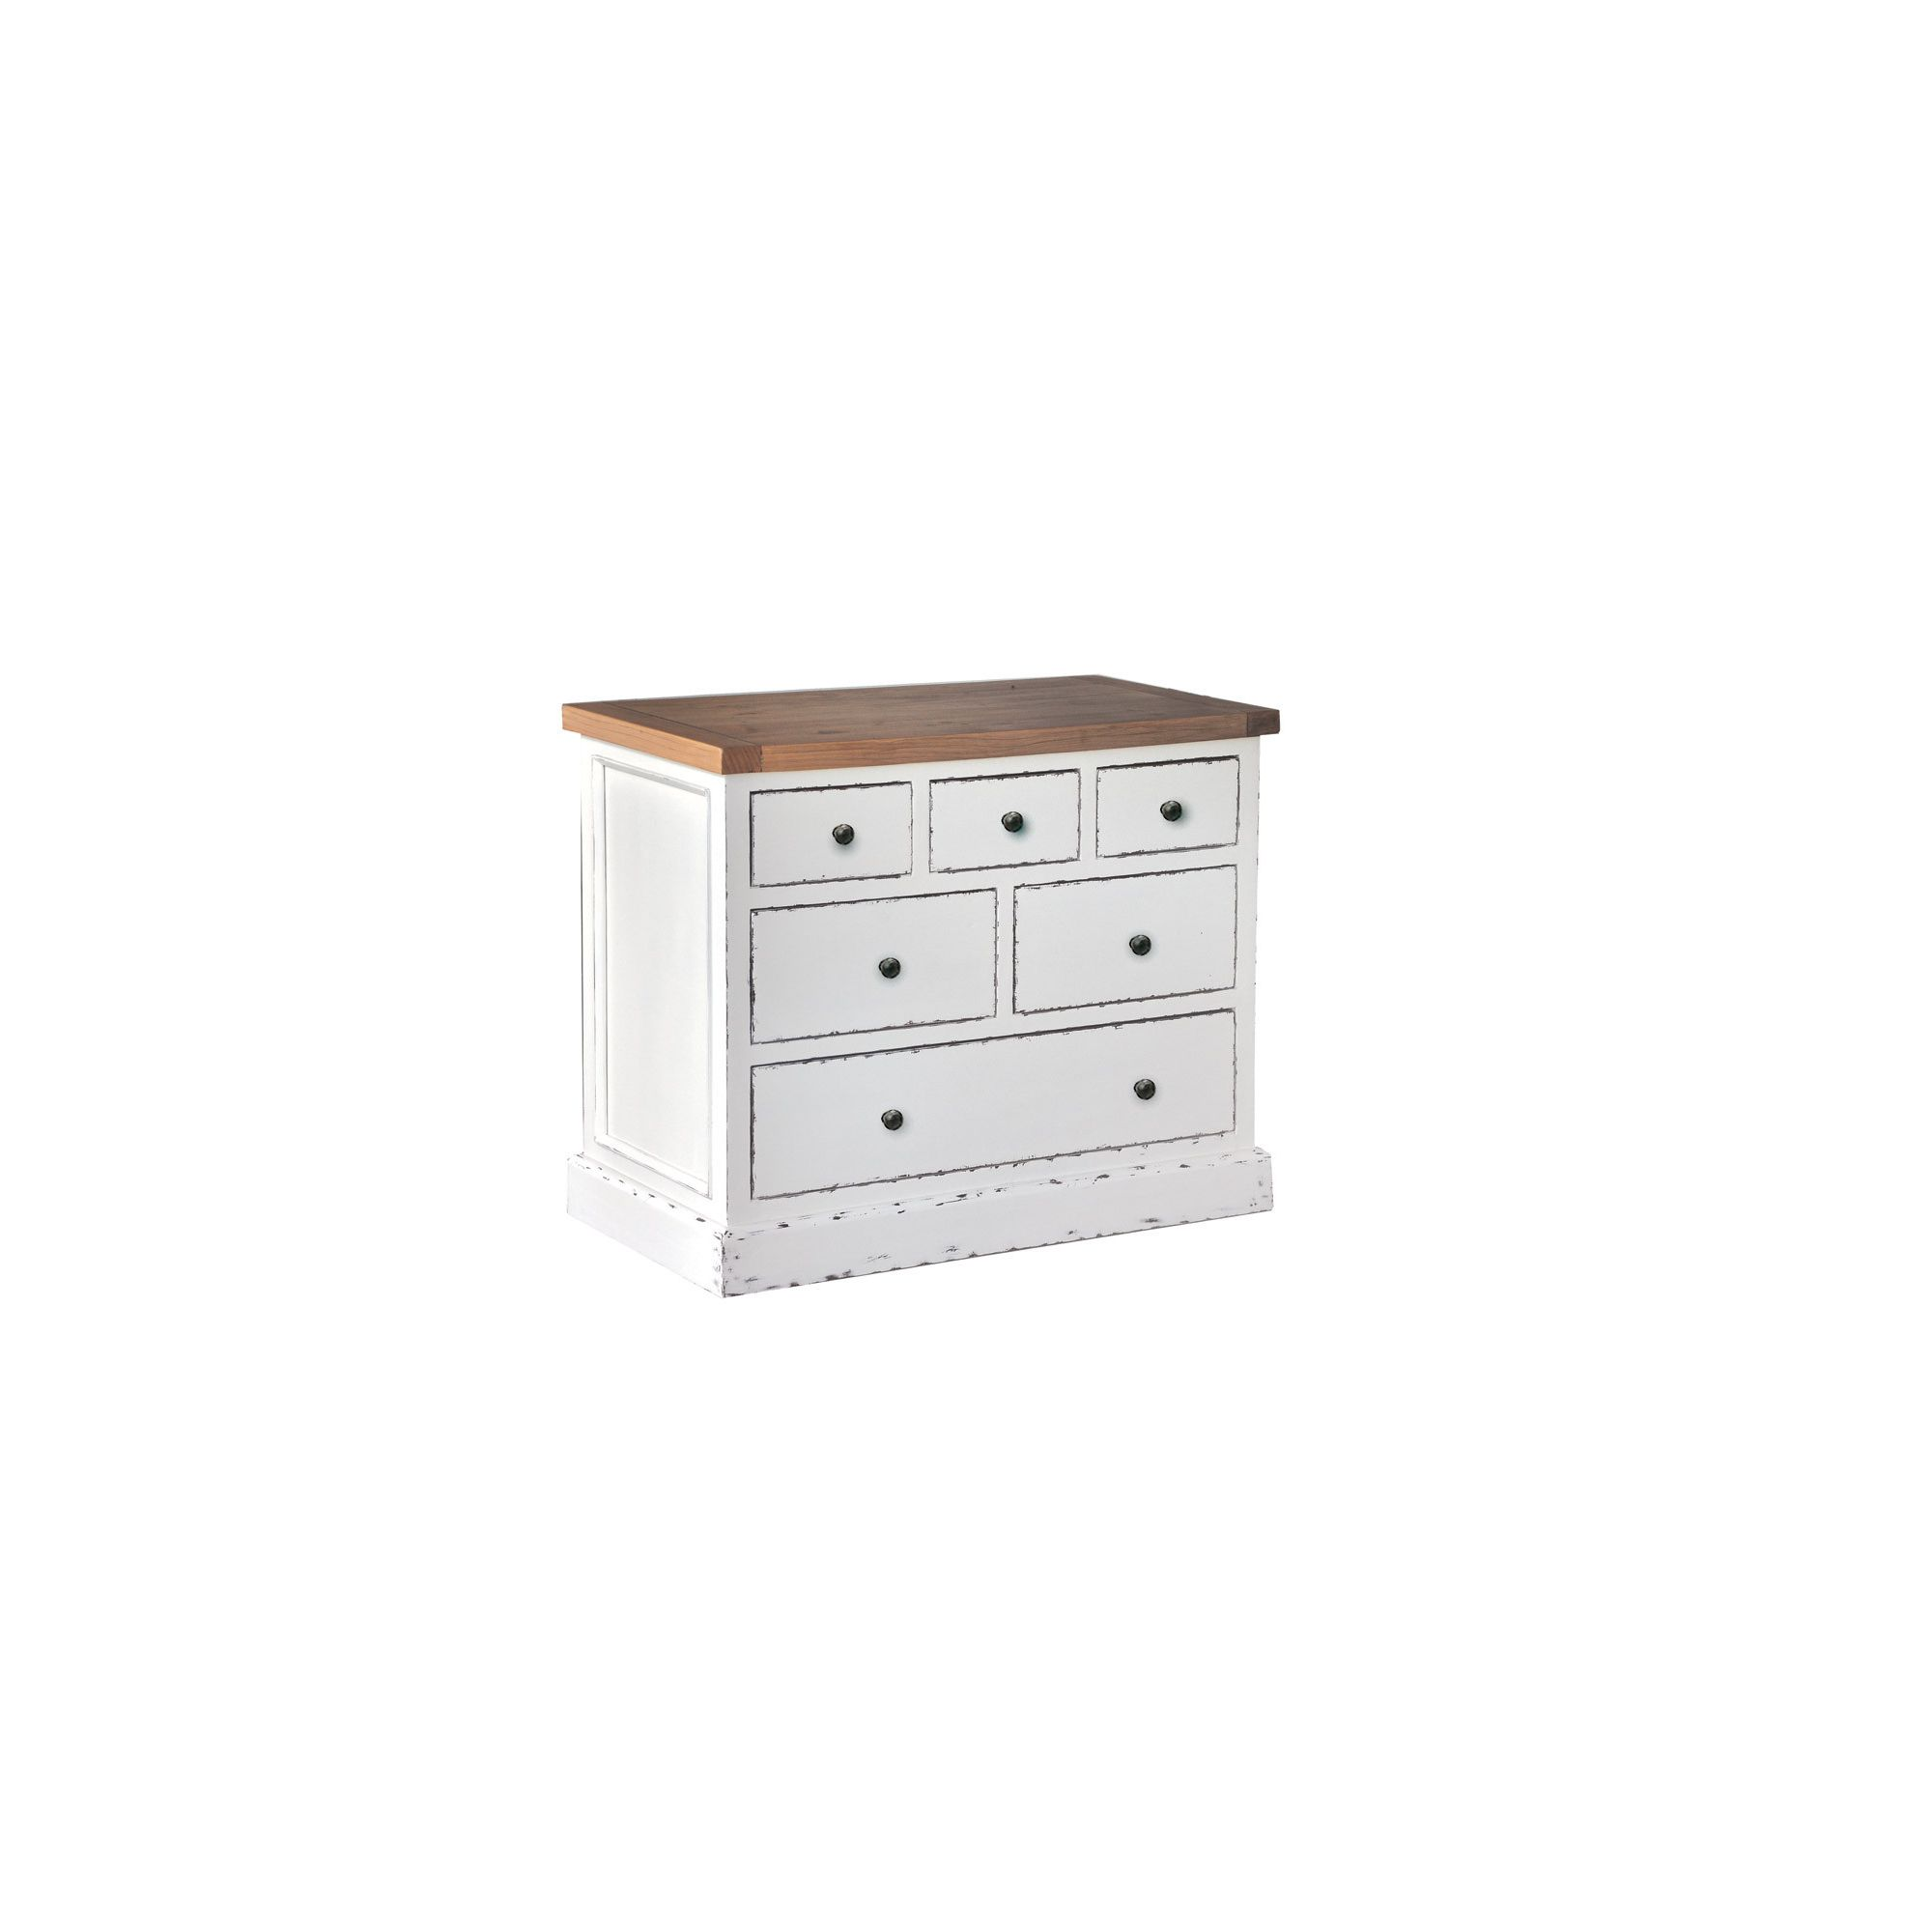 Rowico Essence 5 Drawer Chest at Tesco Direct